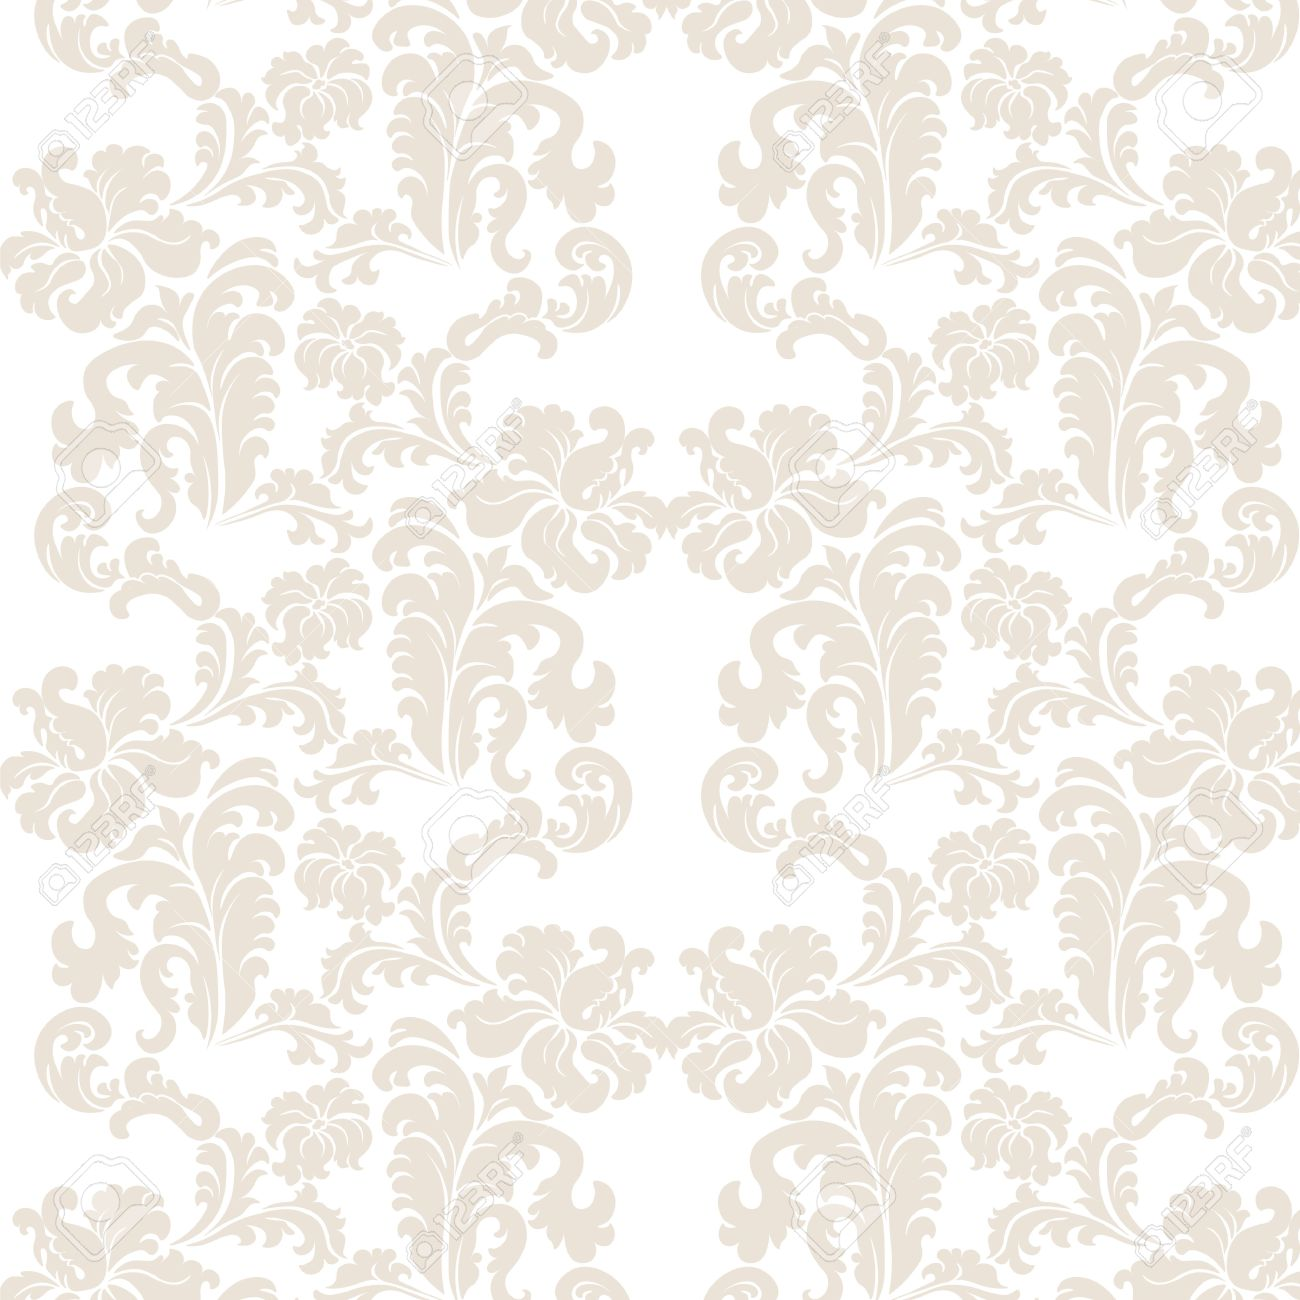 Vintage elegant lily flower ornament pattern luxury texture vector vintage elegant lily flower ornament pattern luxury texture for wallpapers backgrounds and invitation cards white and beige colors vector stopboris Image collections